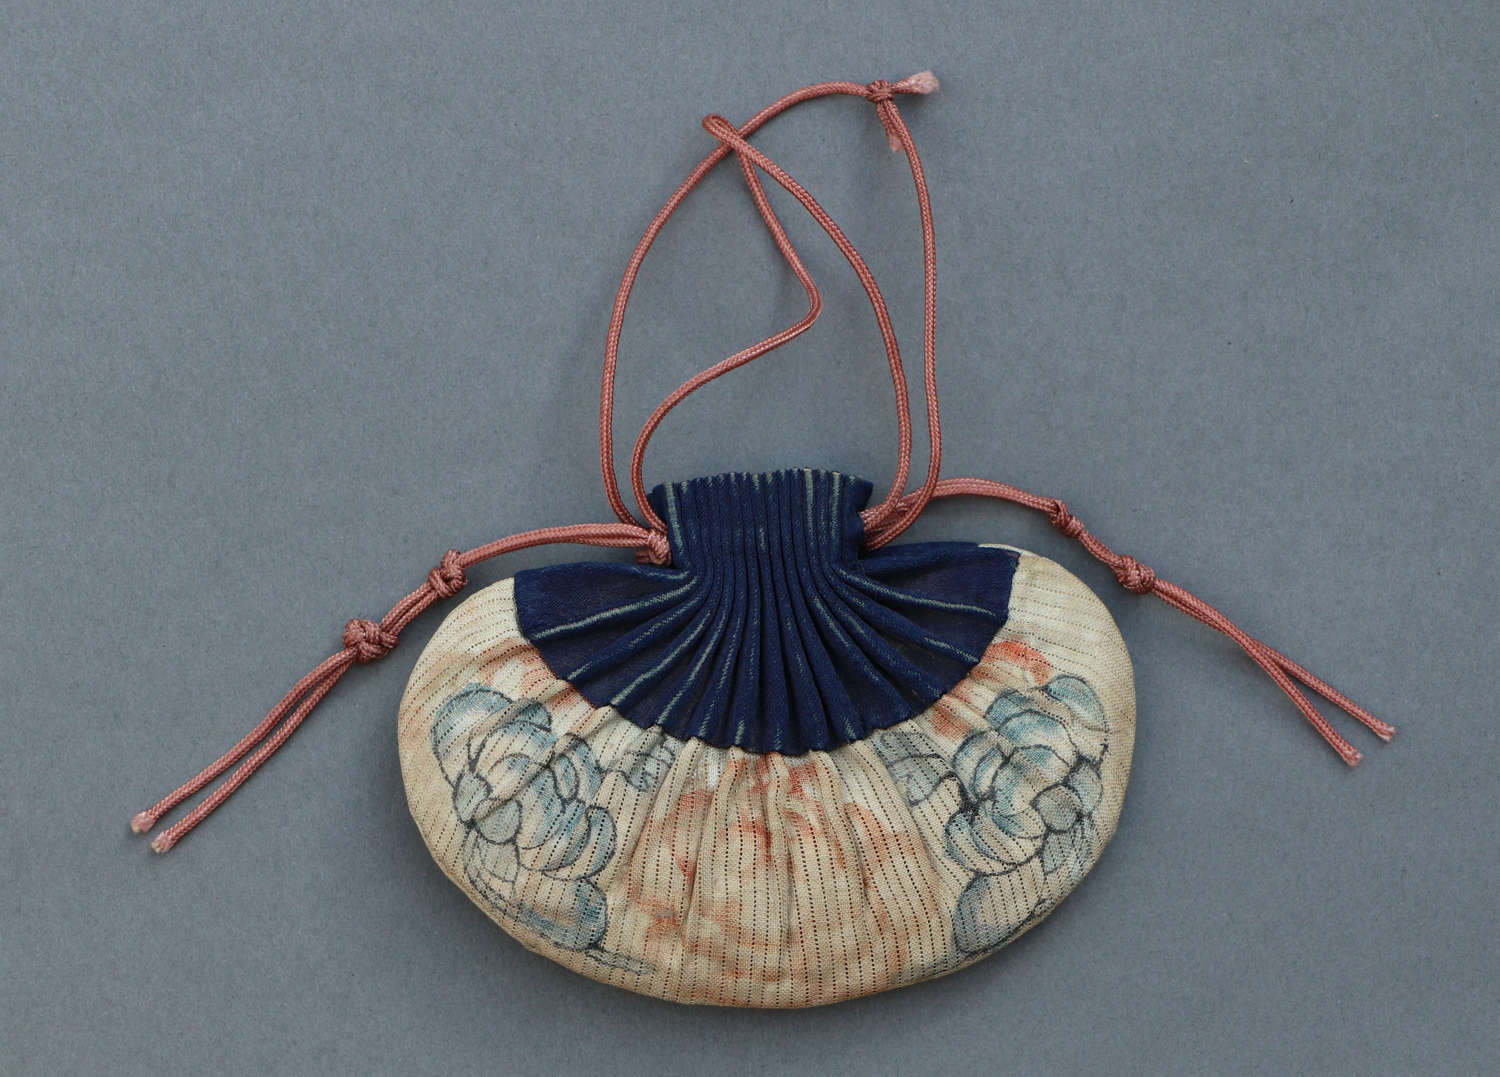 A late C19th/early C20th Chinese purse in cream and dark blue